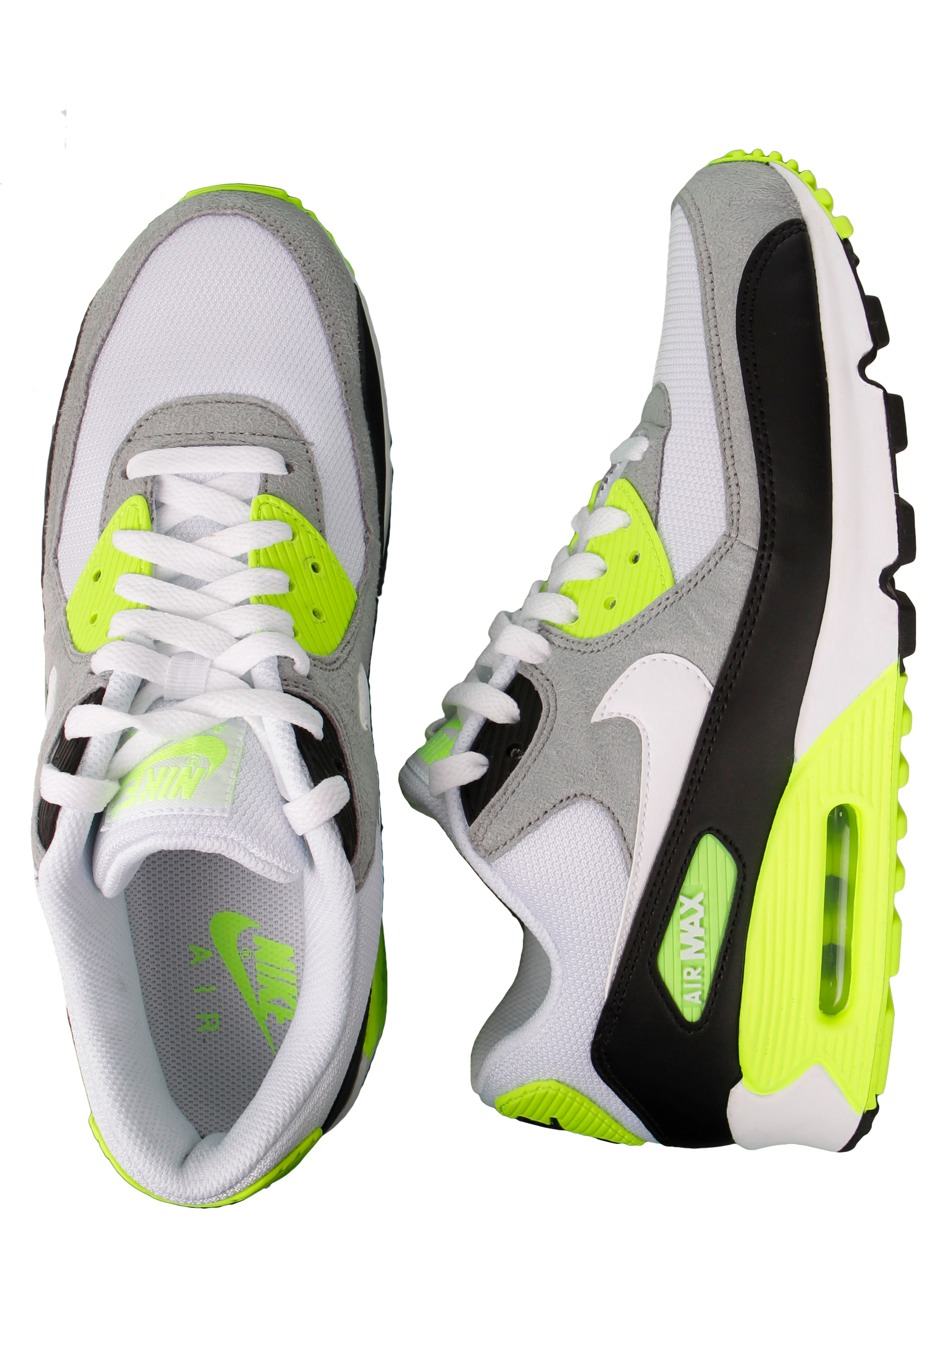 uk availability c8cdc 61691 Nike - Air Max 90 Black/White/Medium Grey/Volt - Shoes - Impericon.com  Worldwide